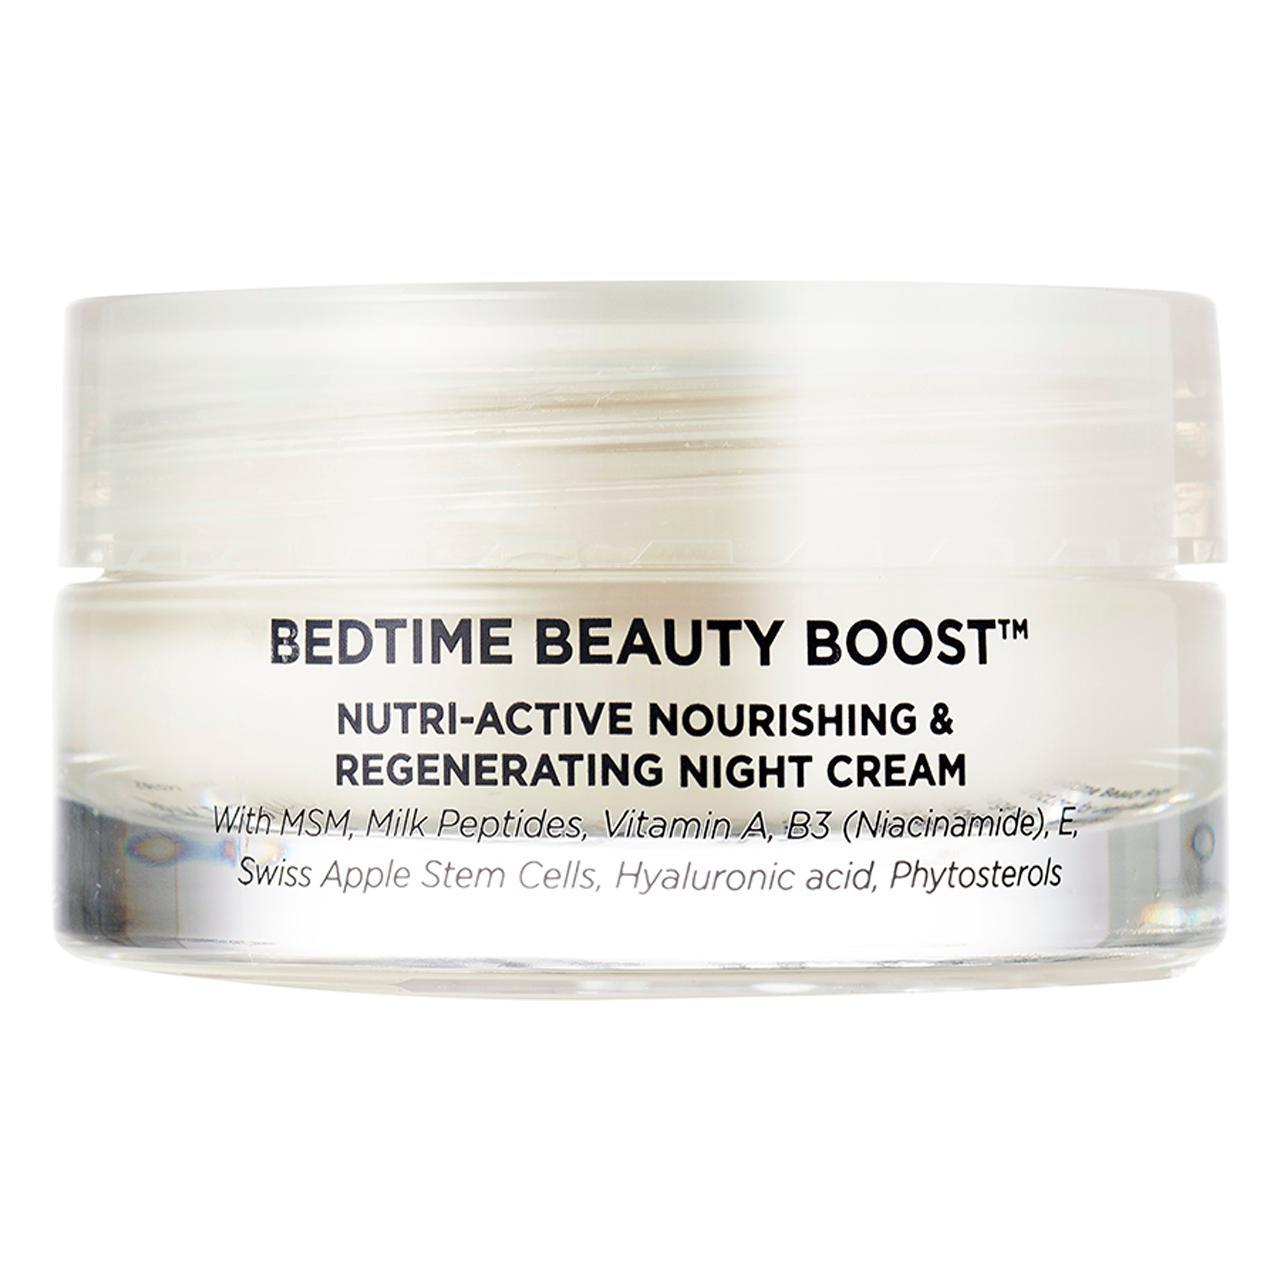 OSKIA Bedtime Beauty Boost (50ml)的圖片搜尋結果